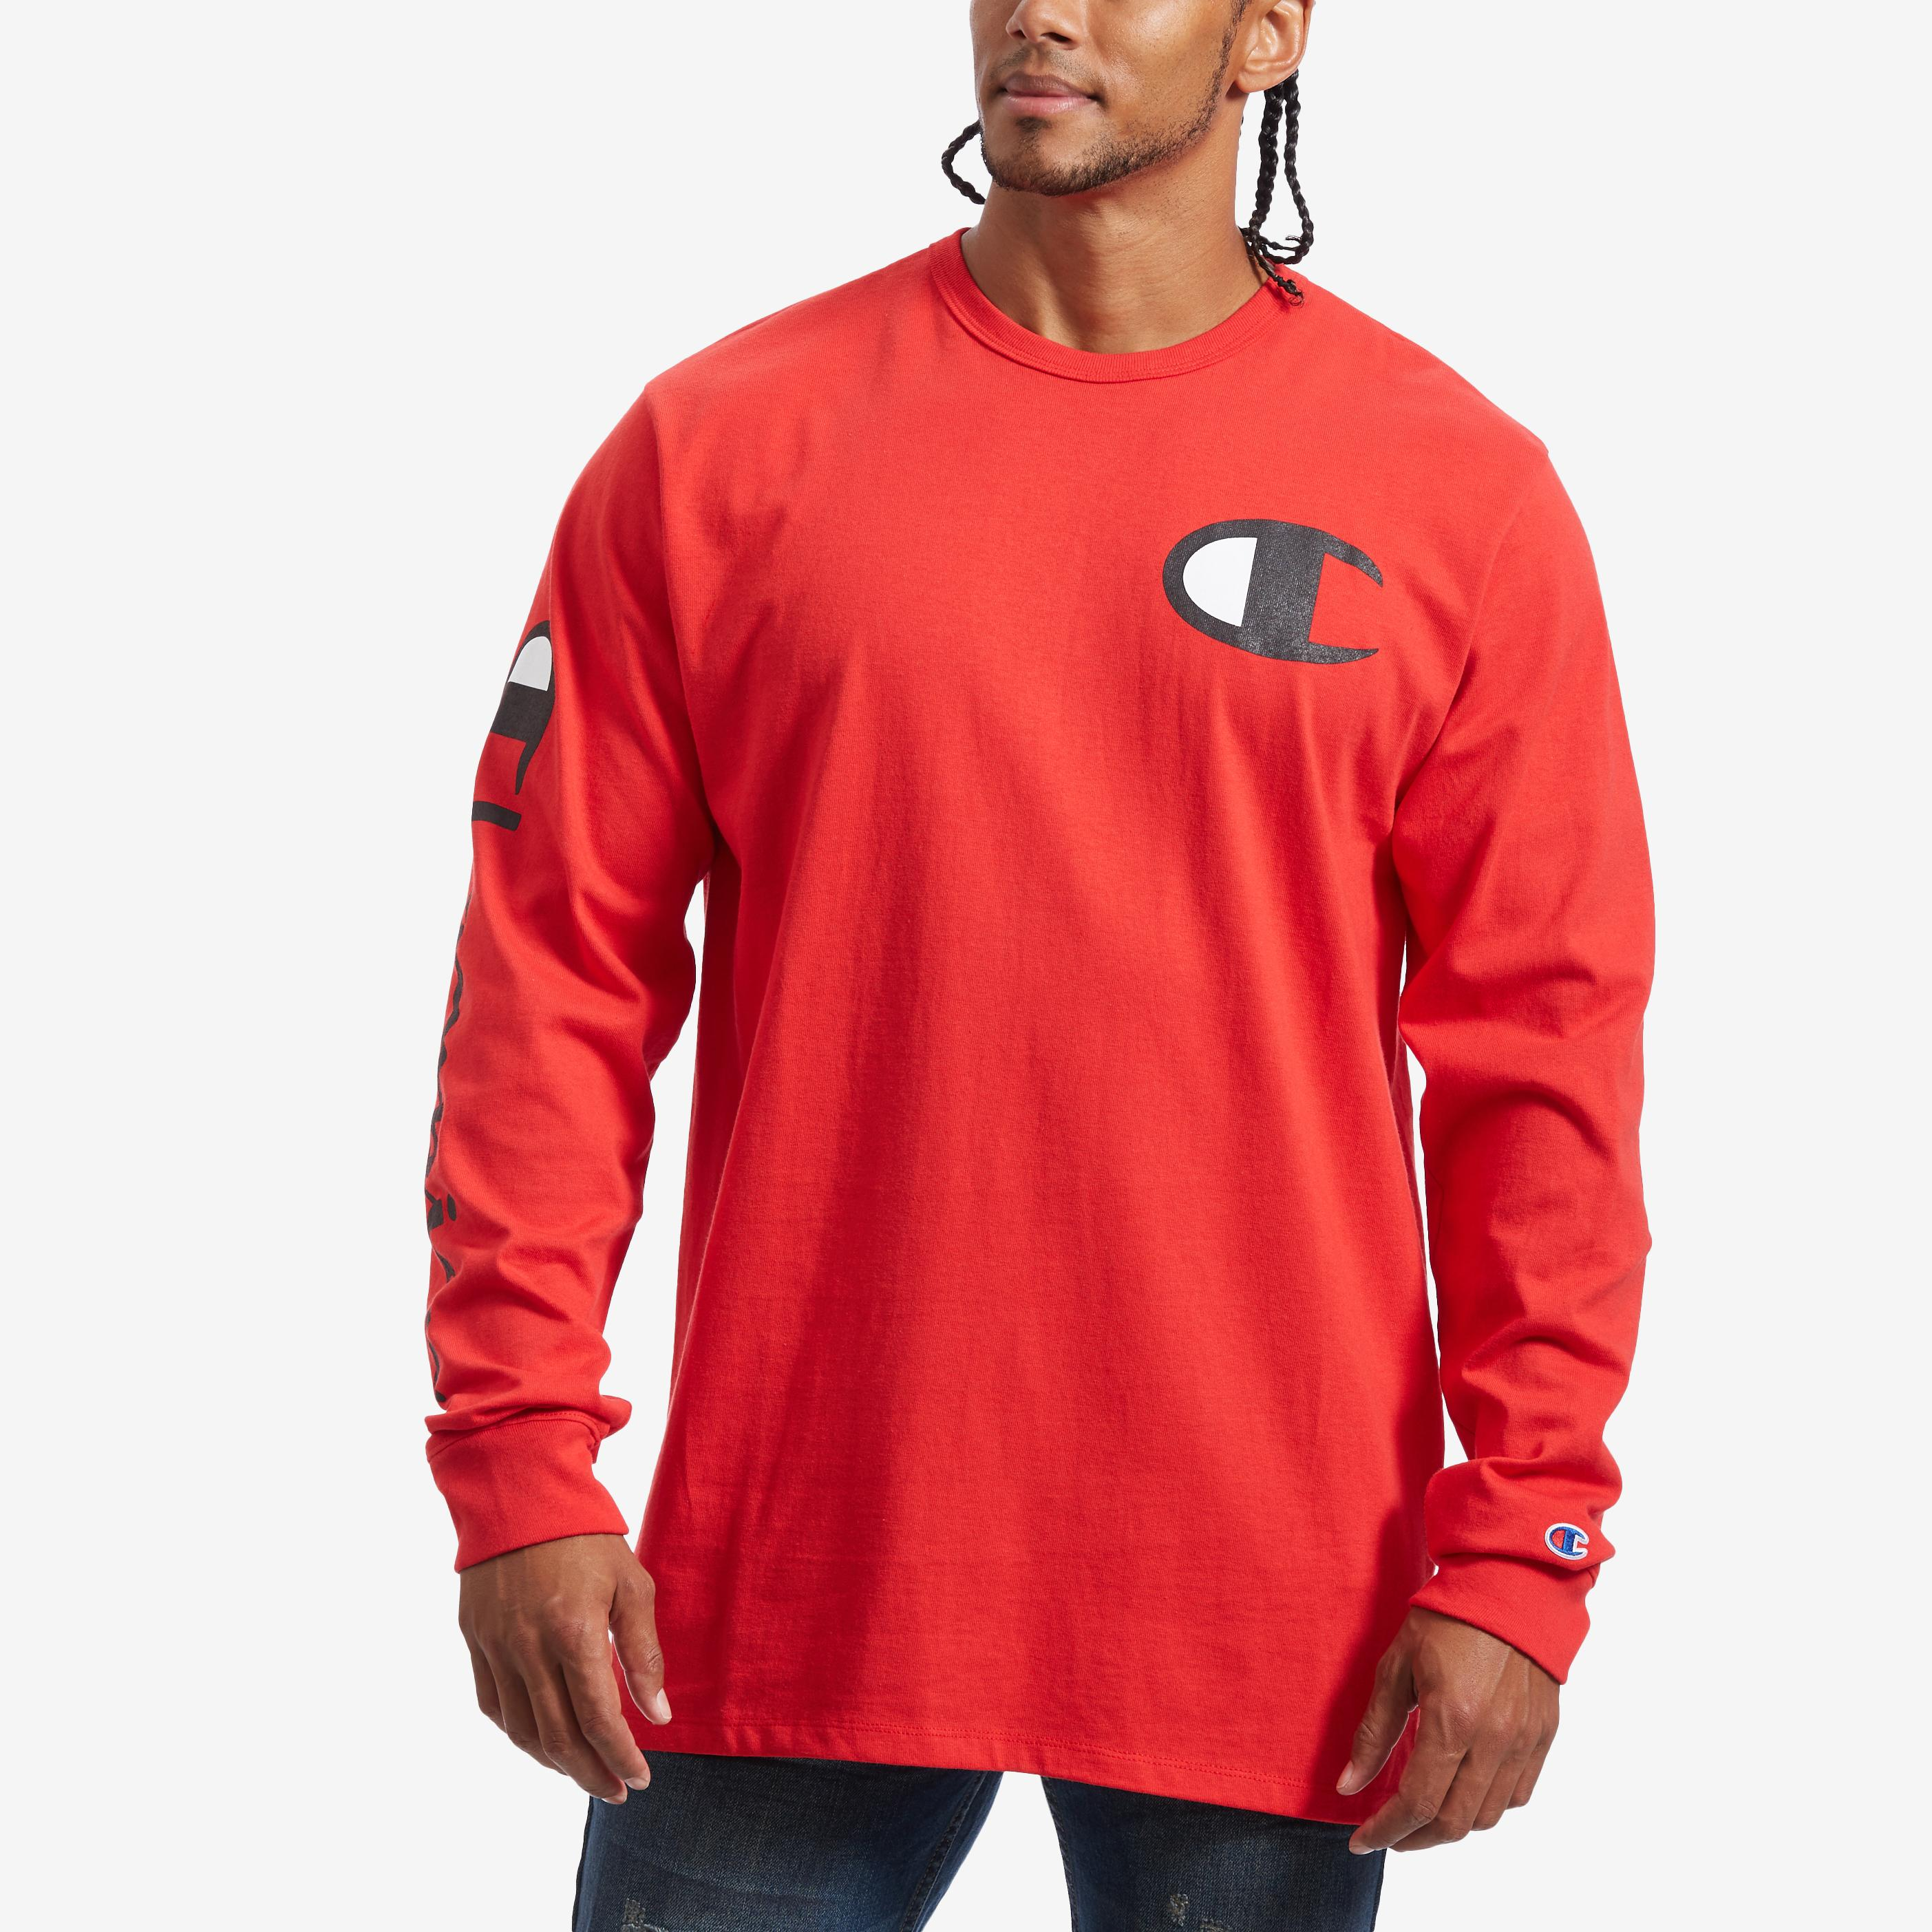 Life Long- Sleeve Tee, Big C Logo